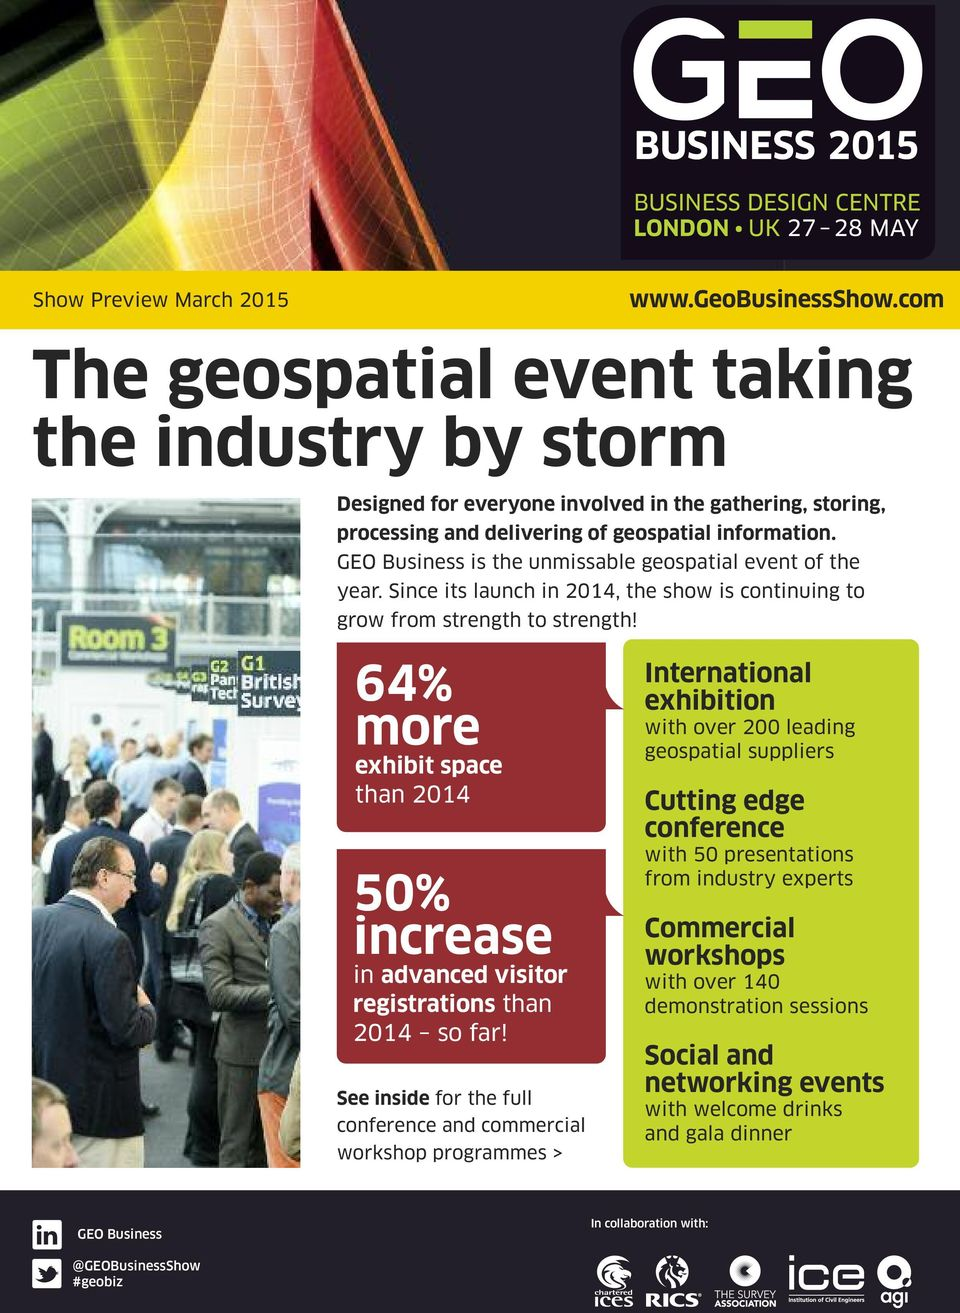 GEO Business is the unmissable geospatial event of the year. Since its launch in 2014, the show is continuing to grow from strength to strength!